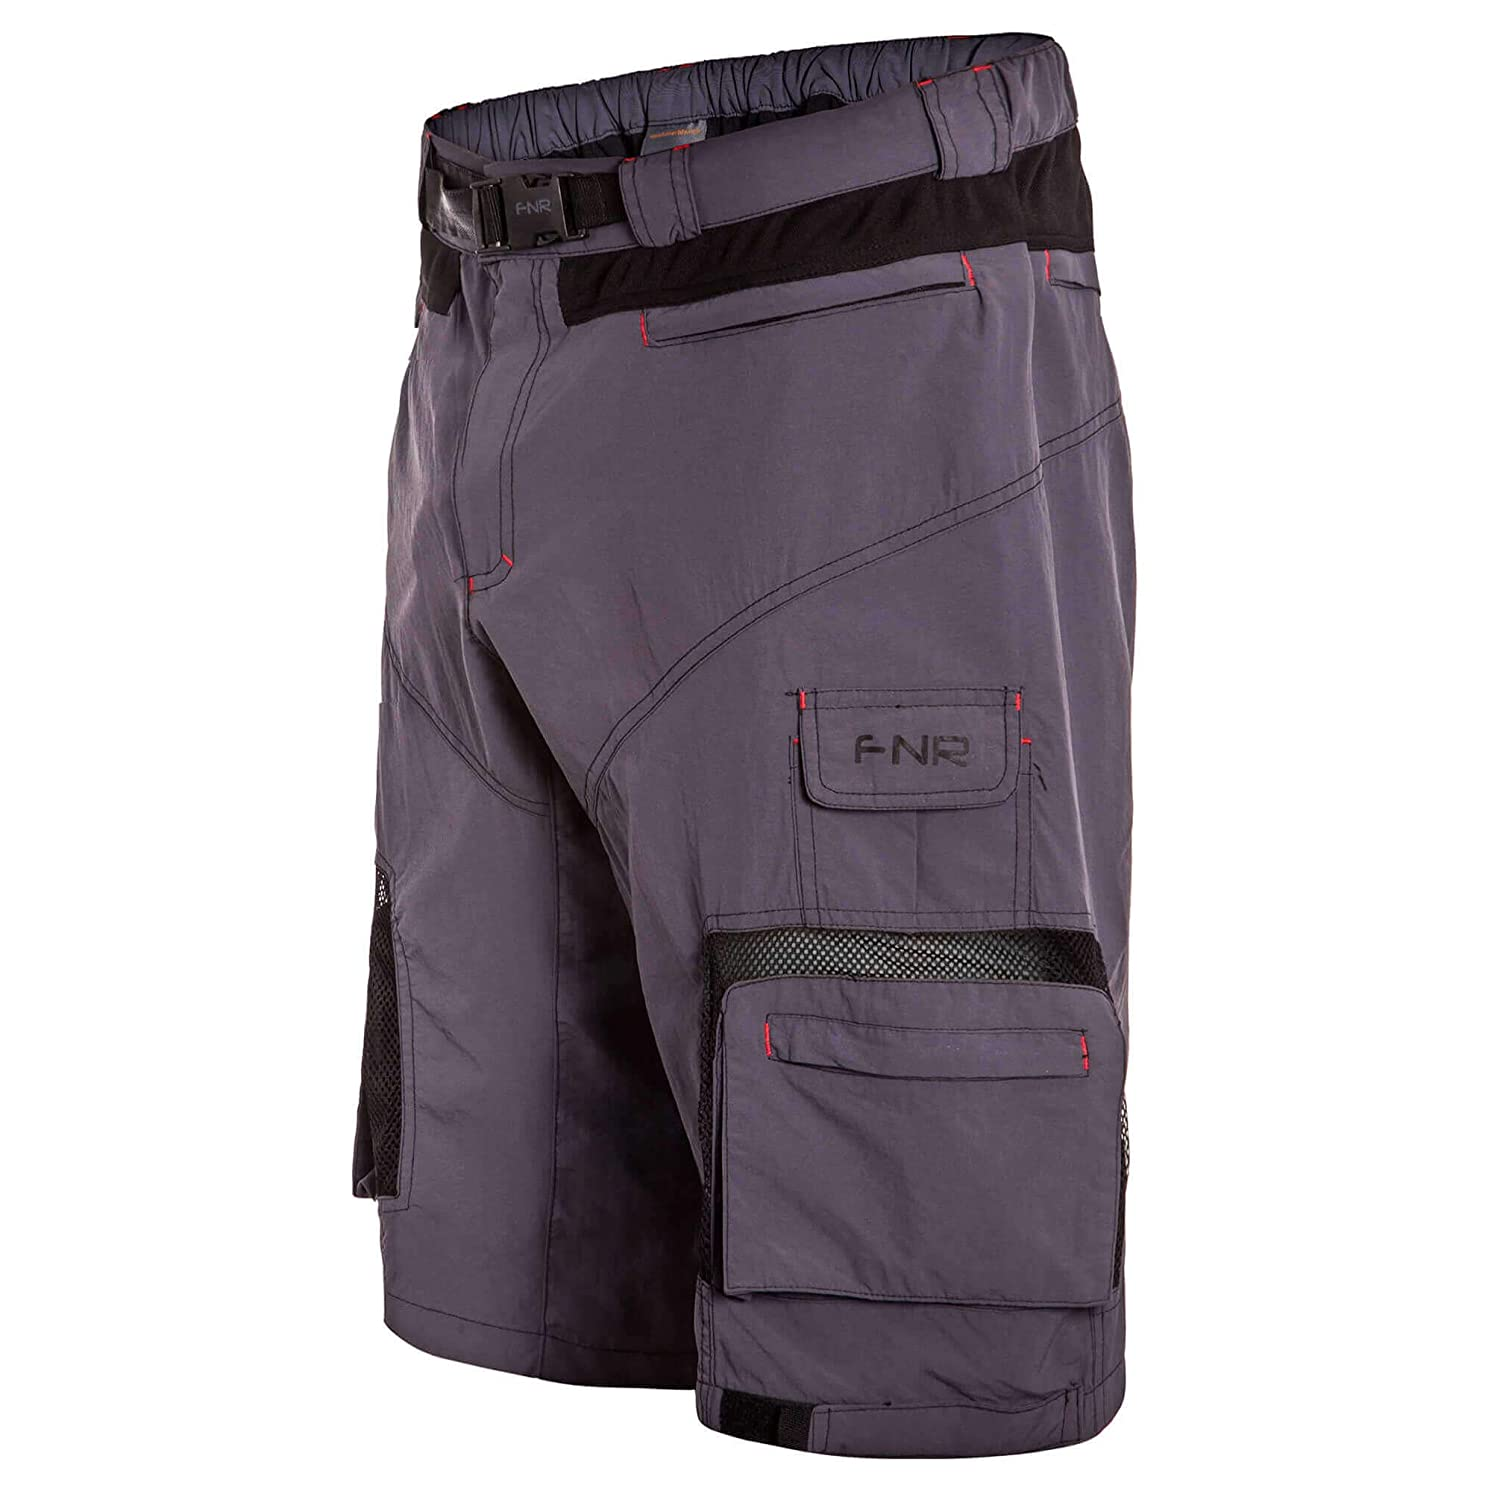 Funkier Lucca - Mountain Bike Pro Baggy Shorts for Men - Enduro MTB Pants, for All Mountain Ride